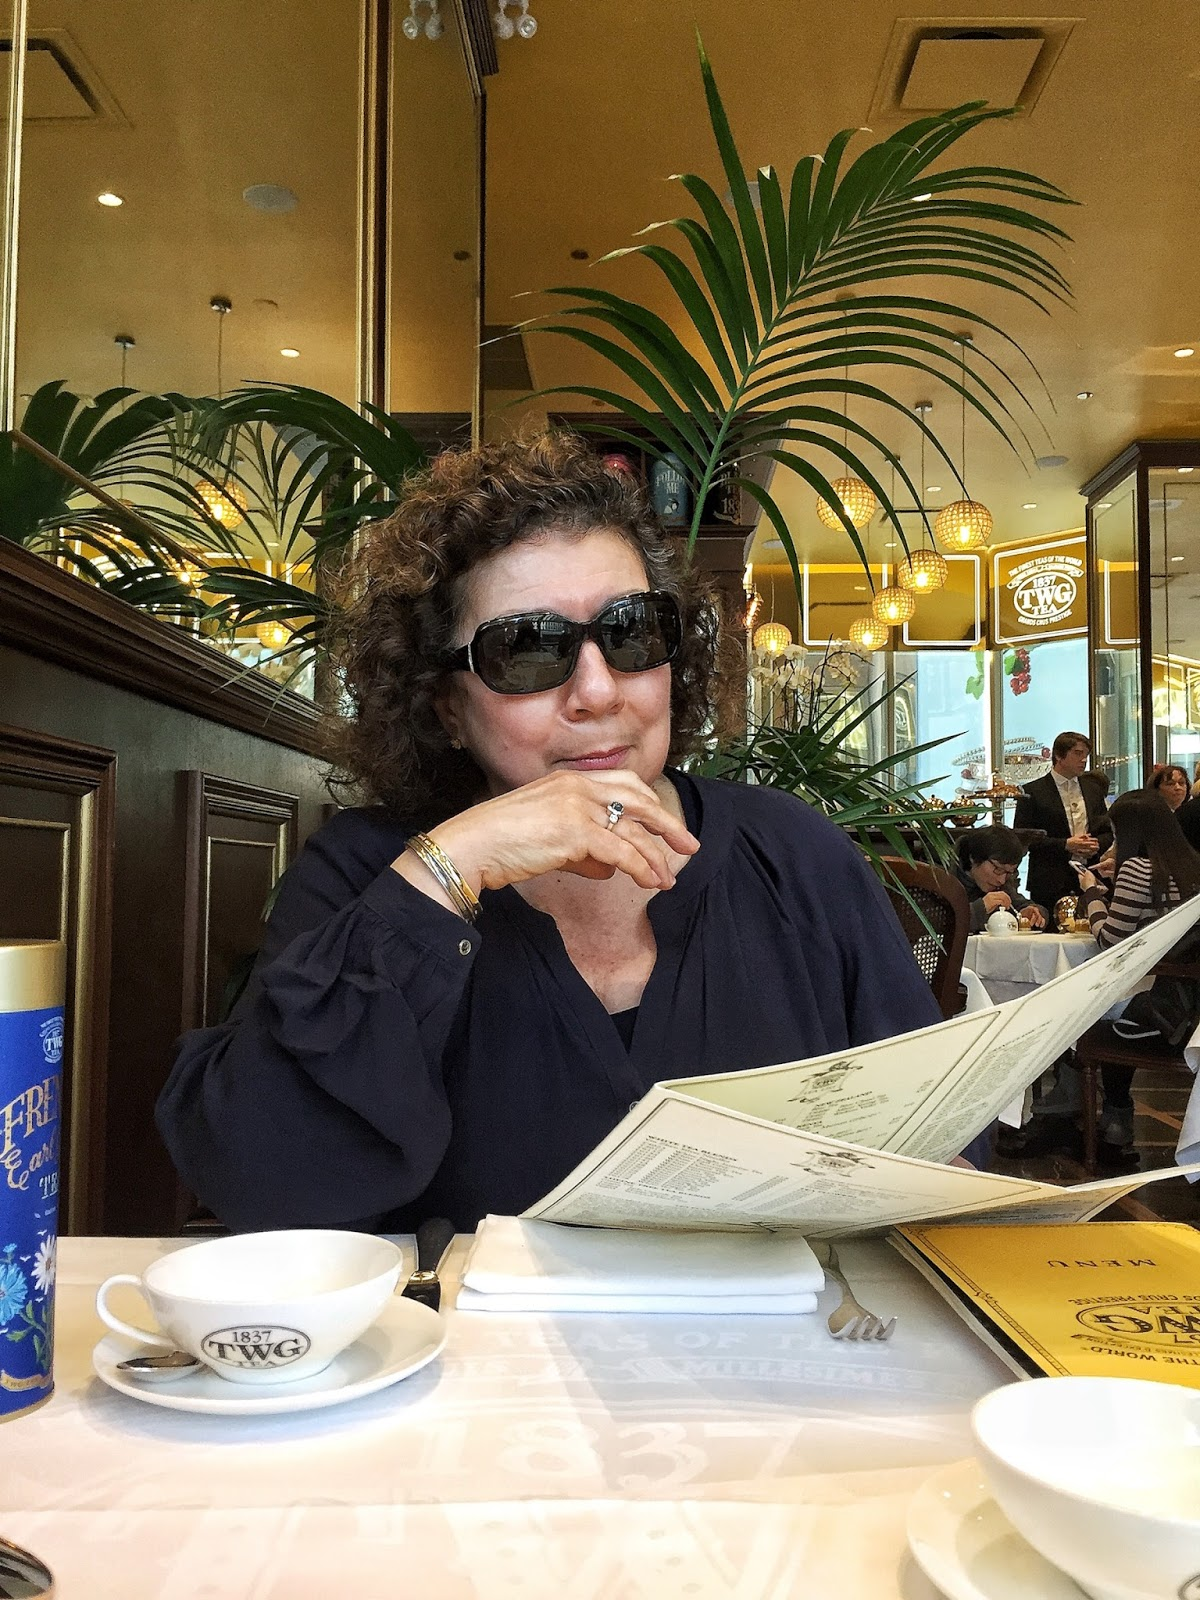 TWG Tea in Vancouver: A quick review